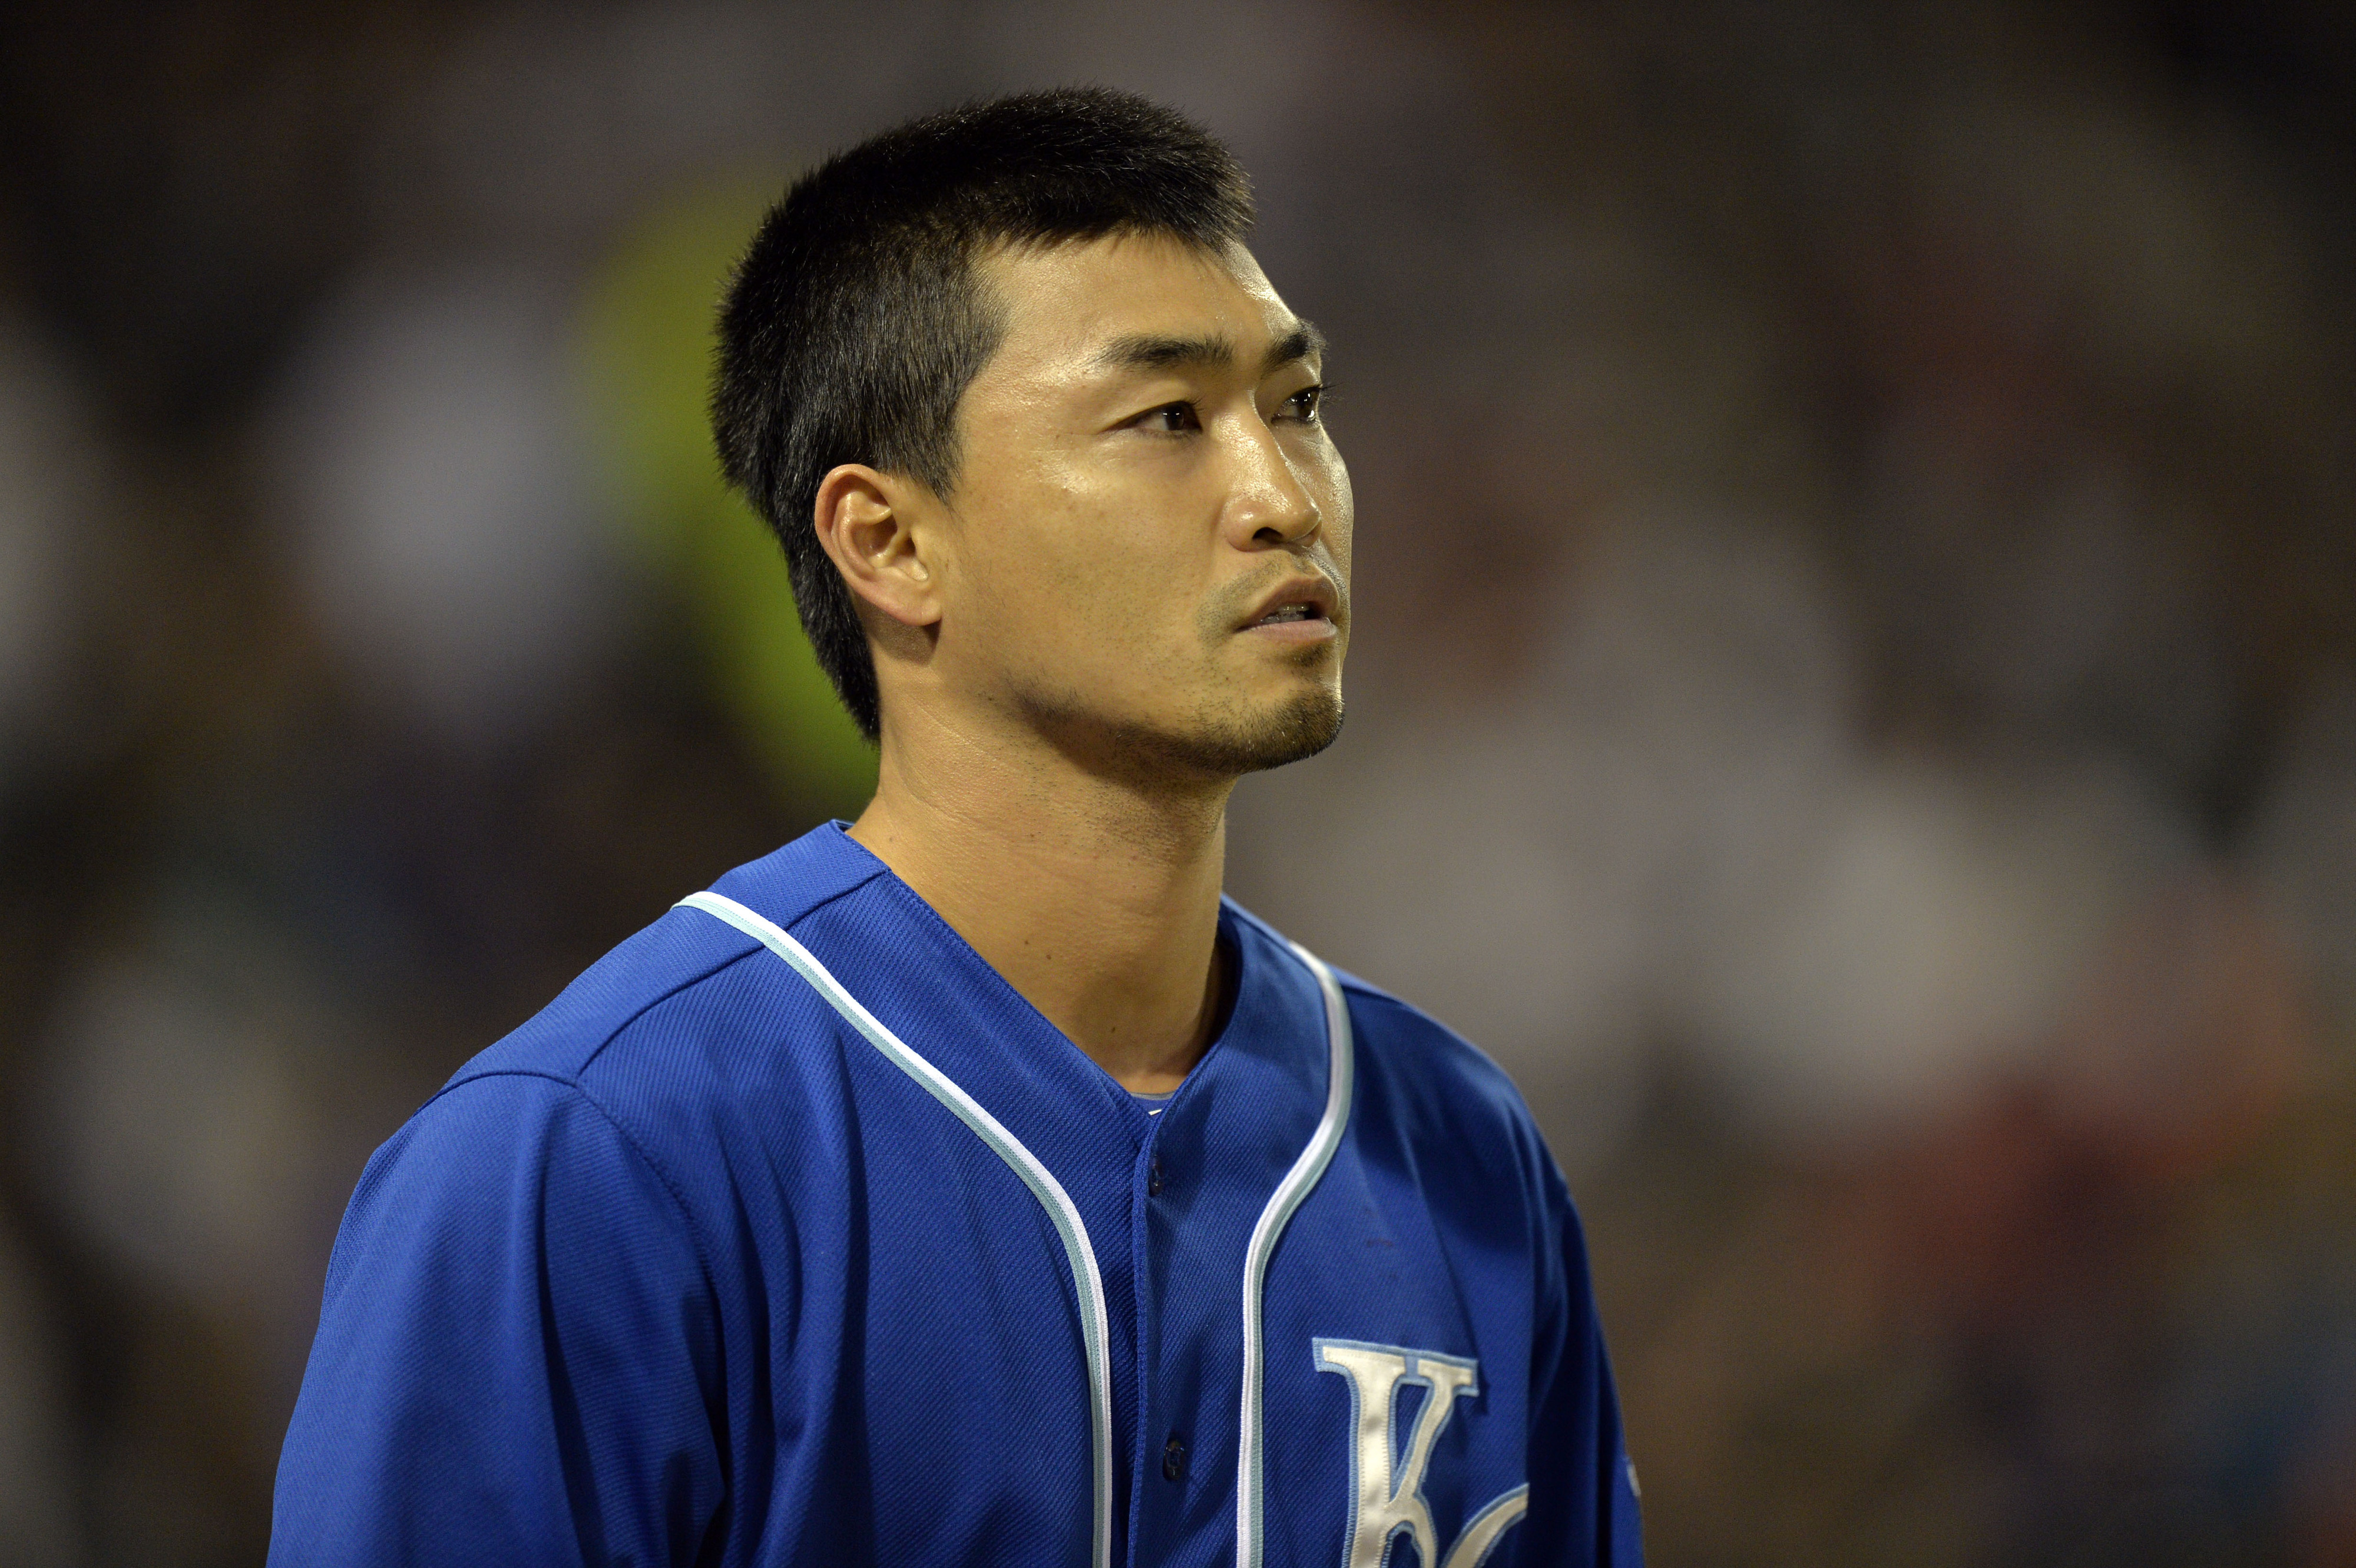 One of the few spin-free photos of Aoki.